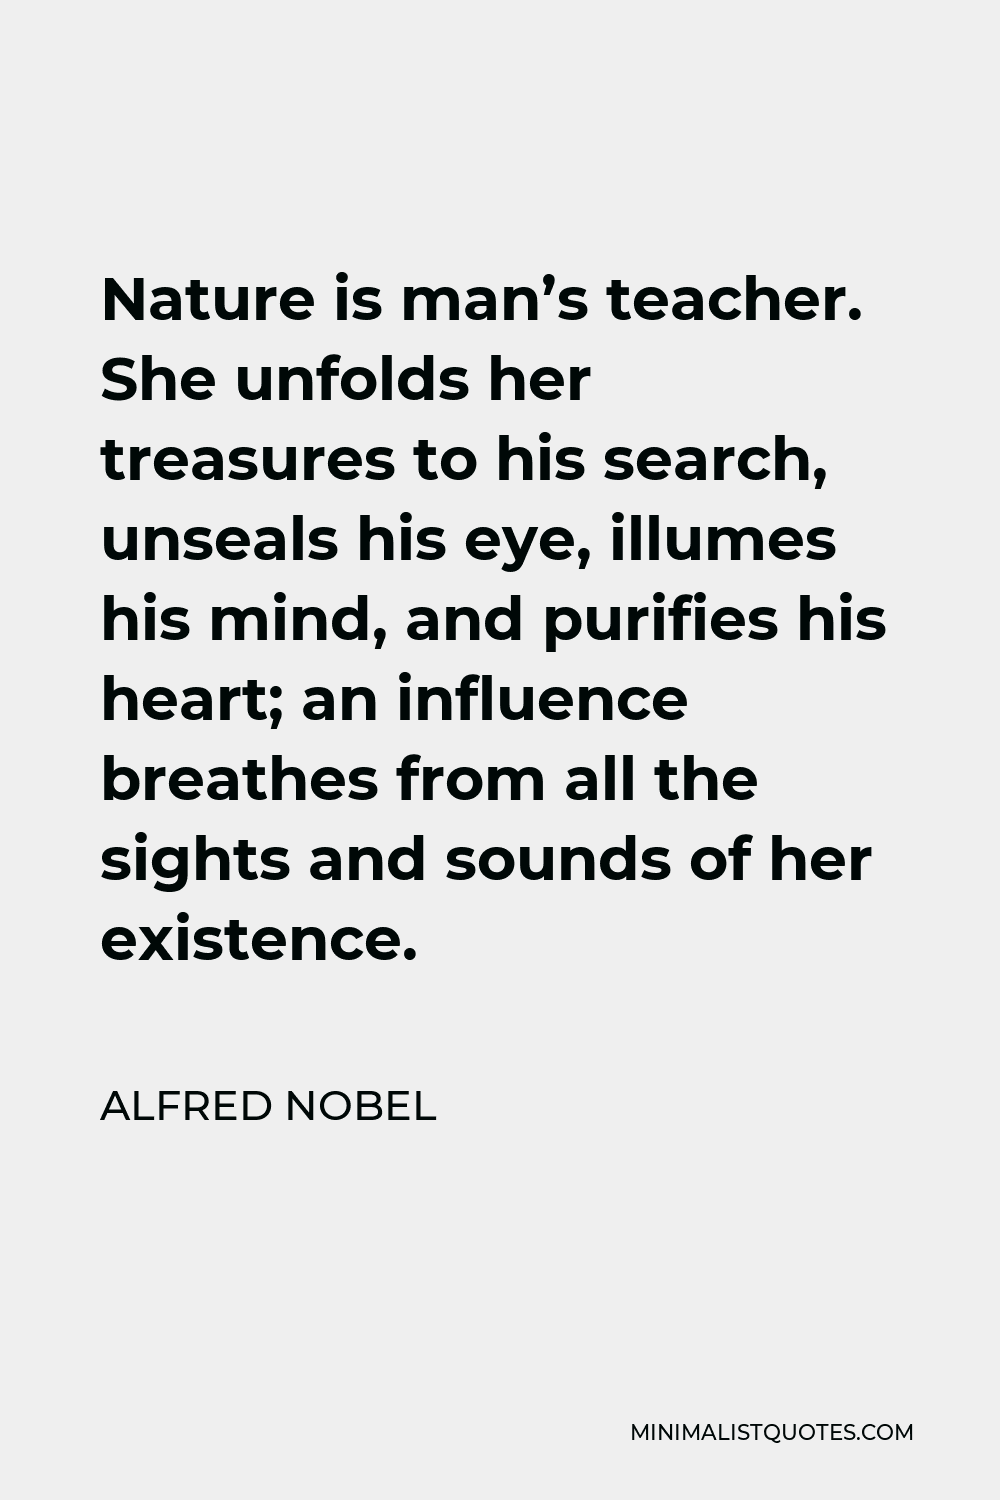 Alfred Nobel Quote - Nature is man's teacher. She unfolds her treasures to his search, unseals his eye, illumes his mind, and purifies his heart; an influence breathes from all the sights and sounds of her existence.